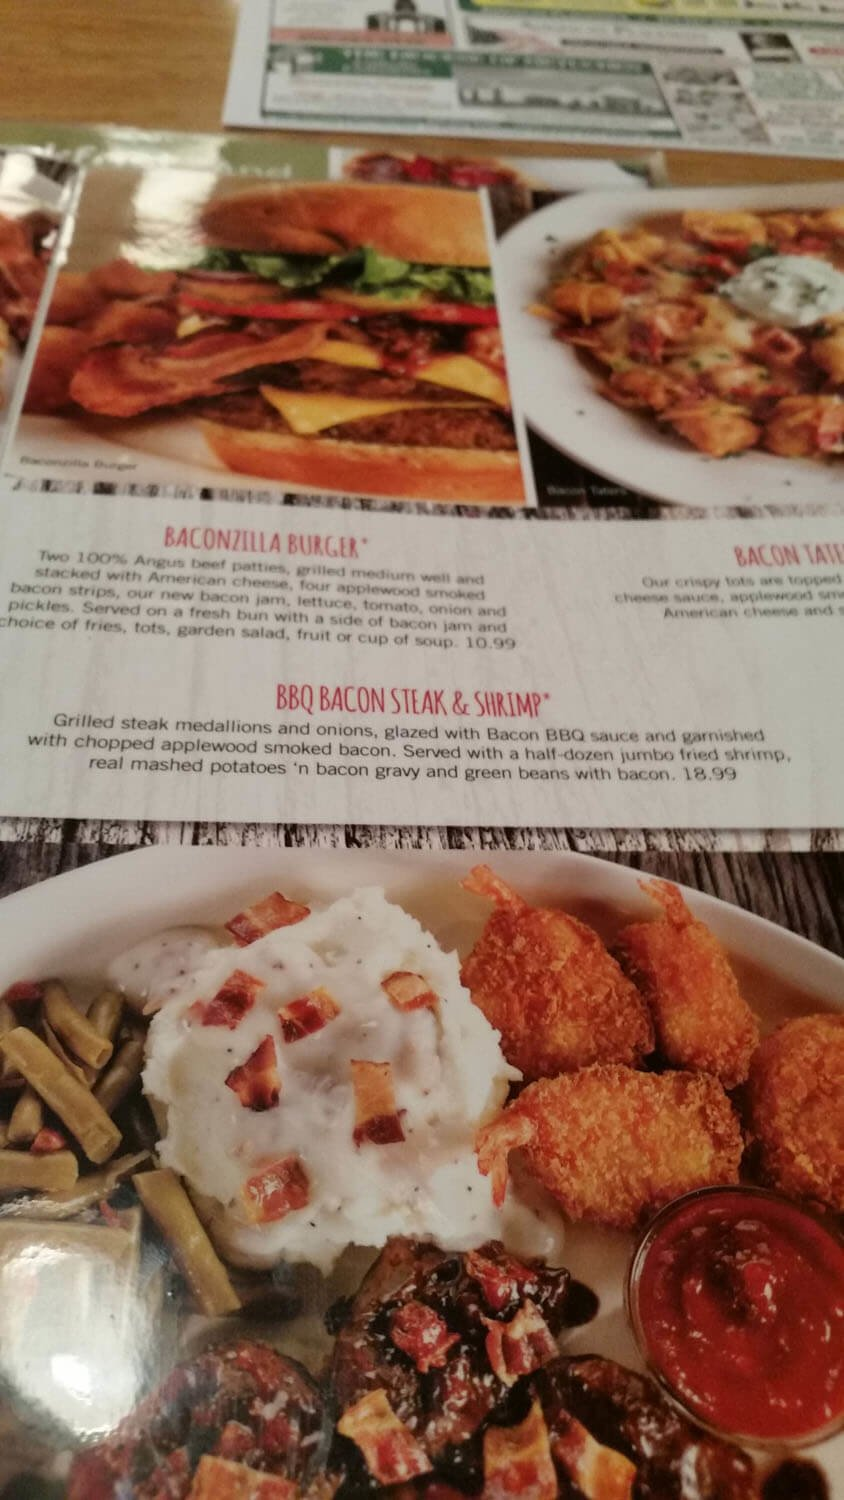 Perkins Menu – 46